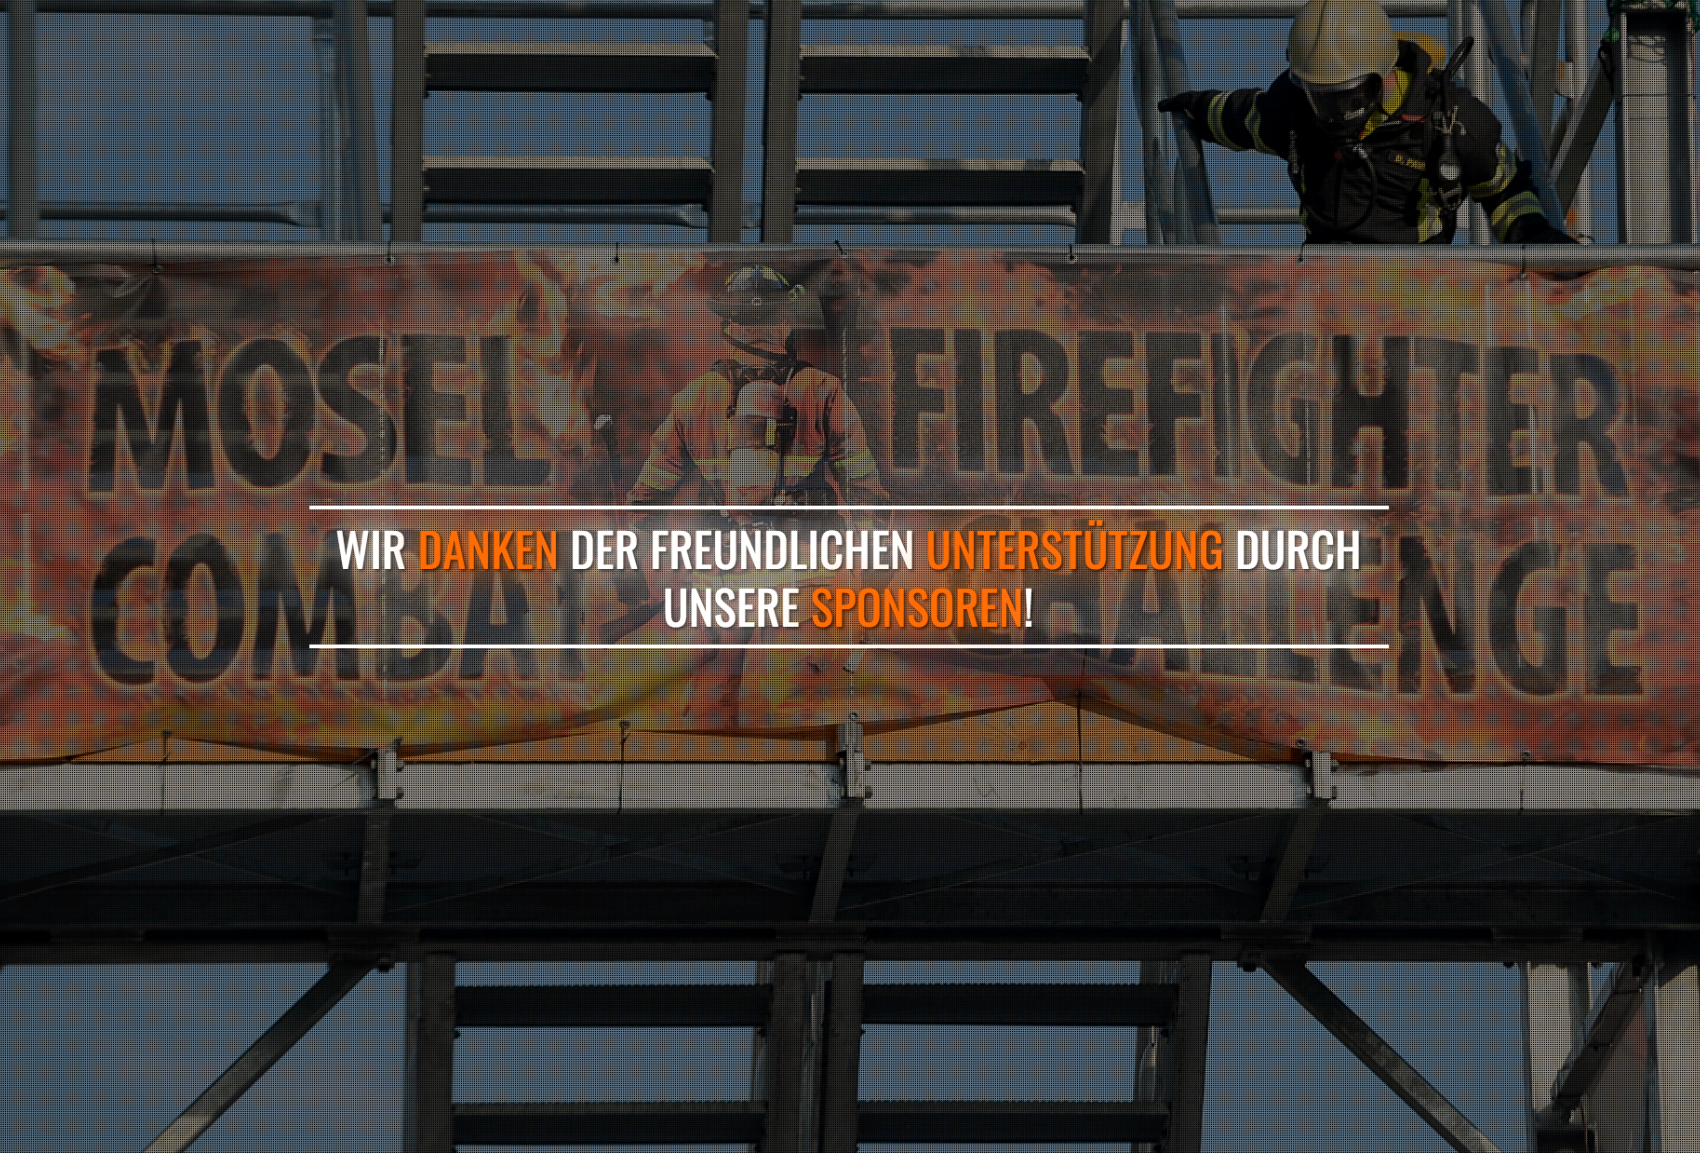 Mosel Firefighter Challange